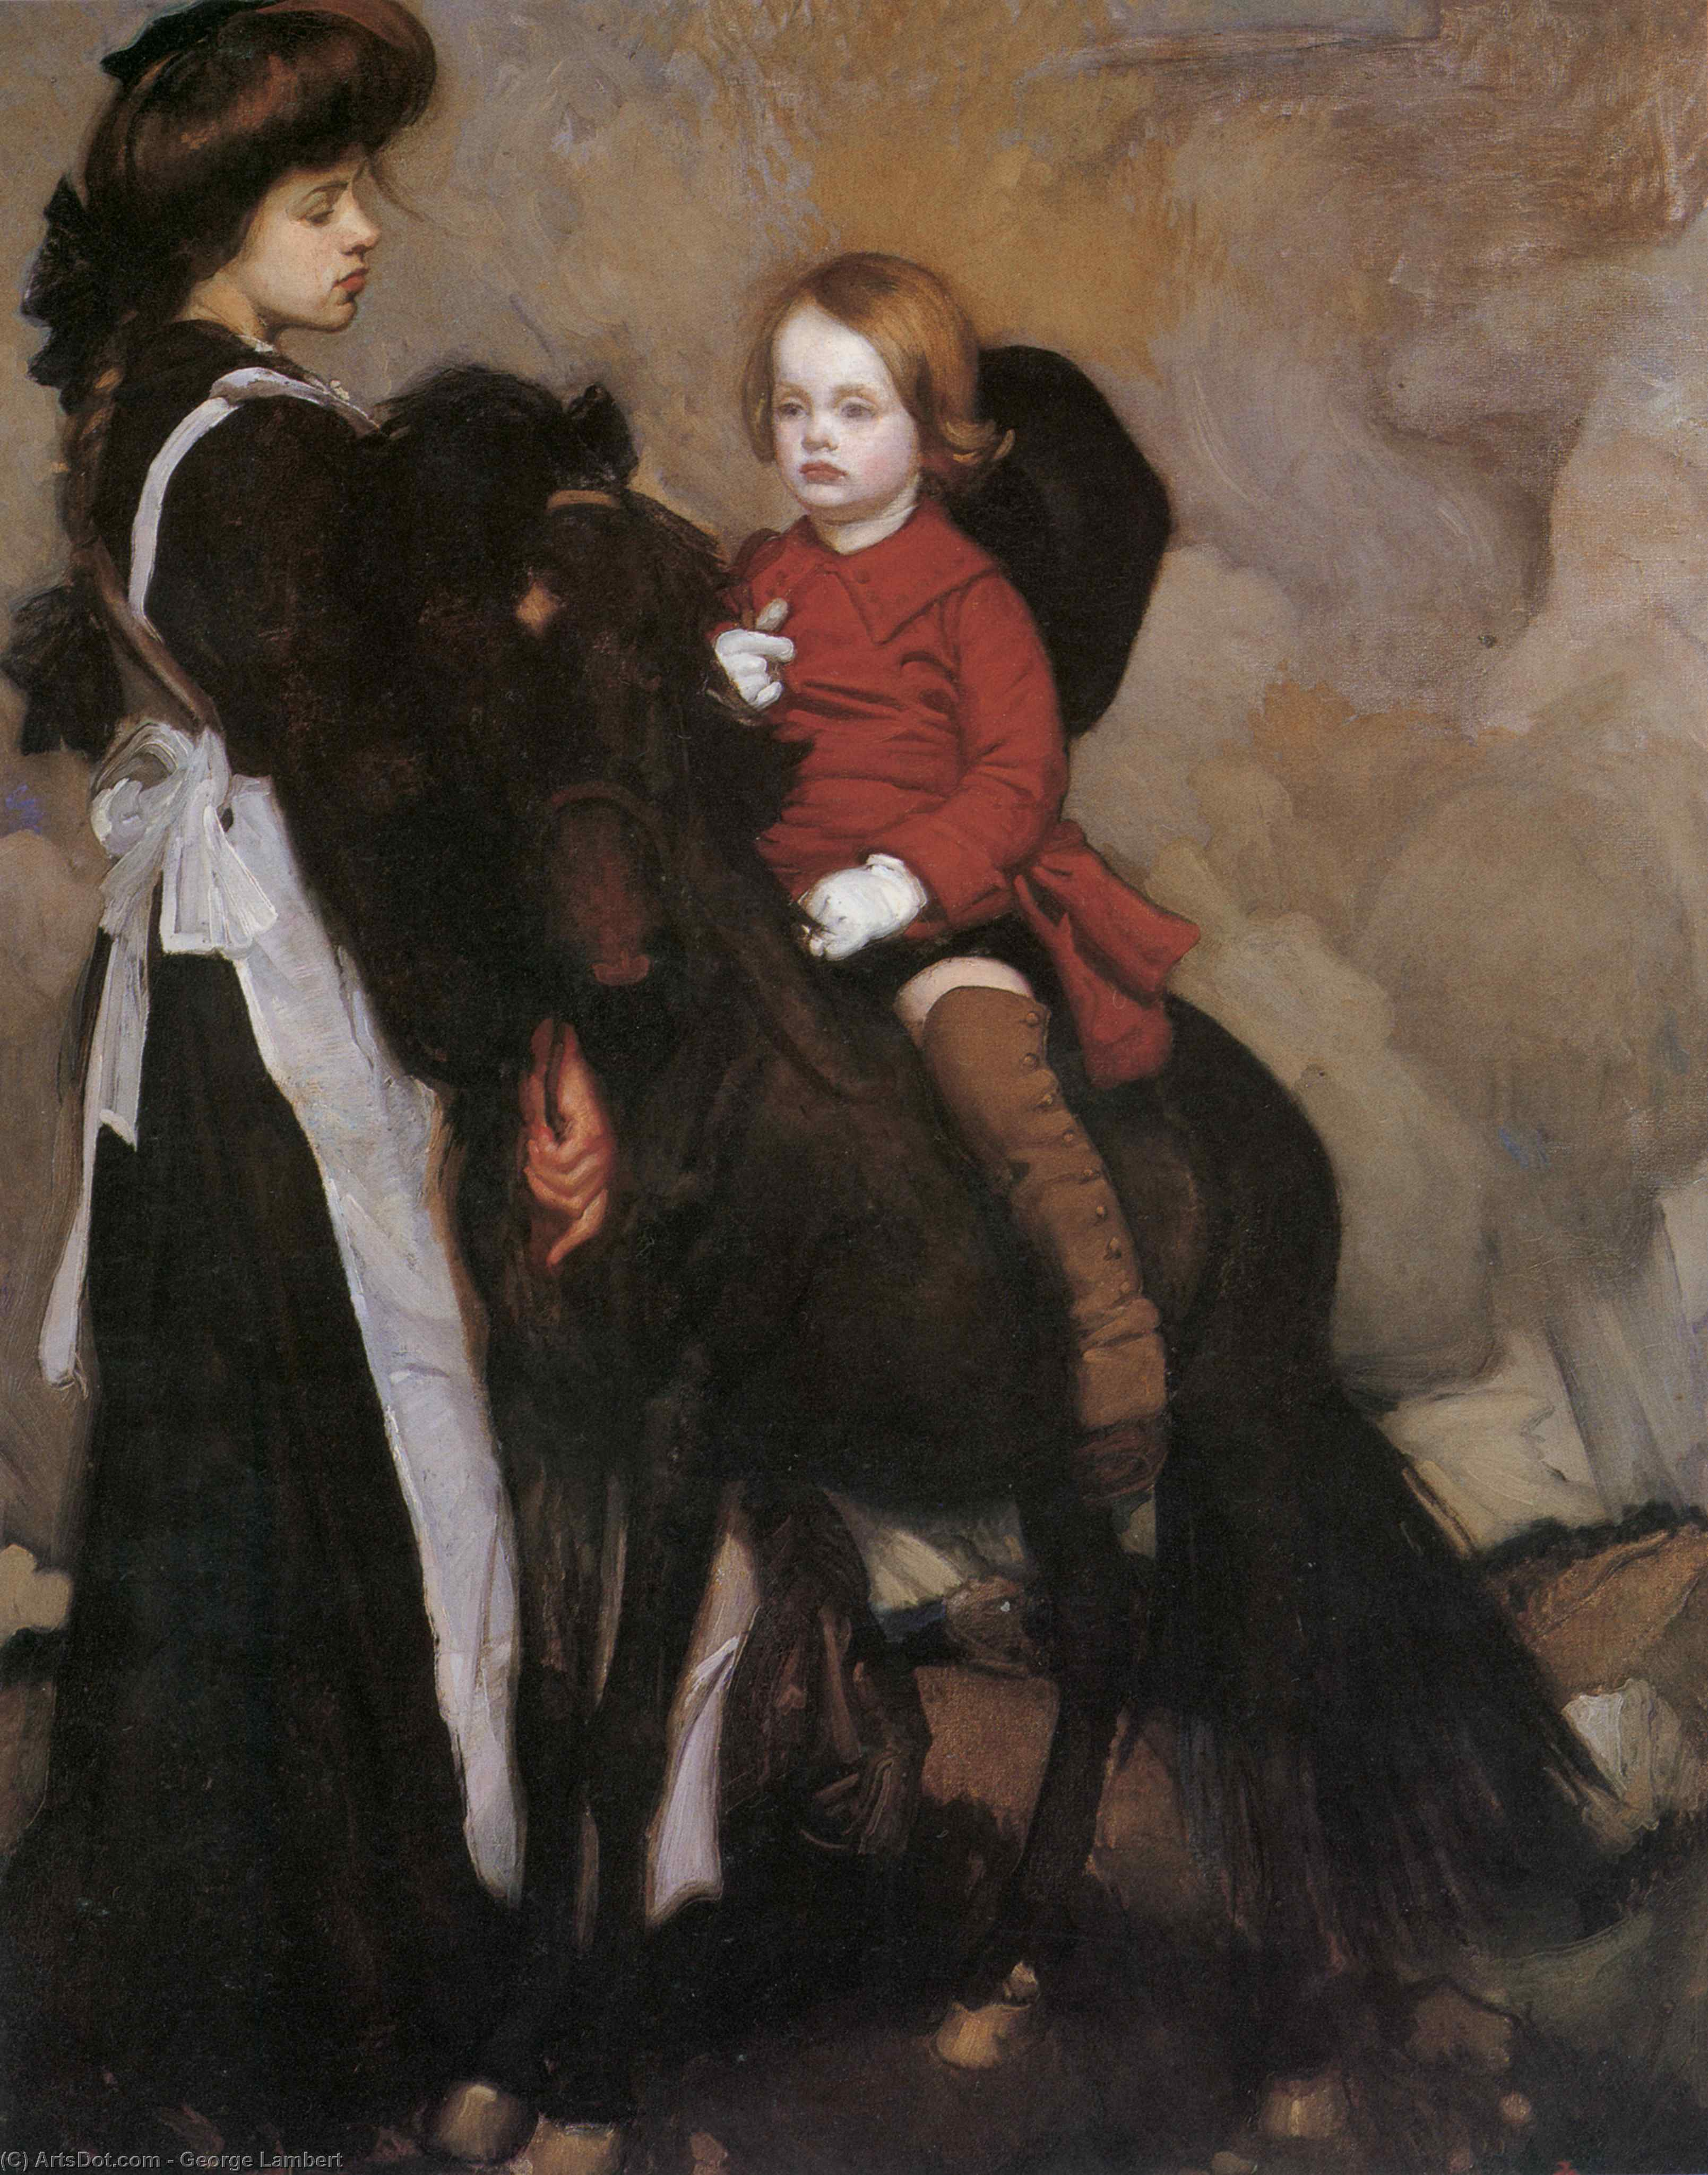 Lmabert Equestrian Portrait of a Boy by George Lambert (1873-1930, Russia)